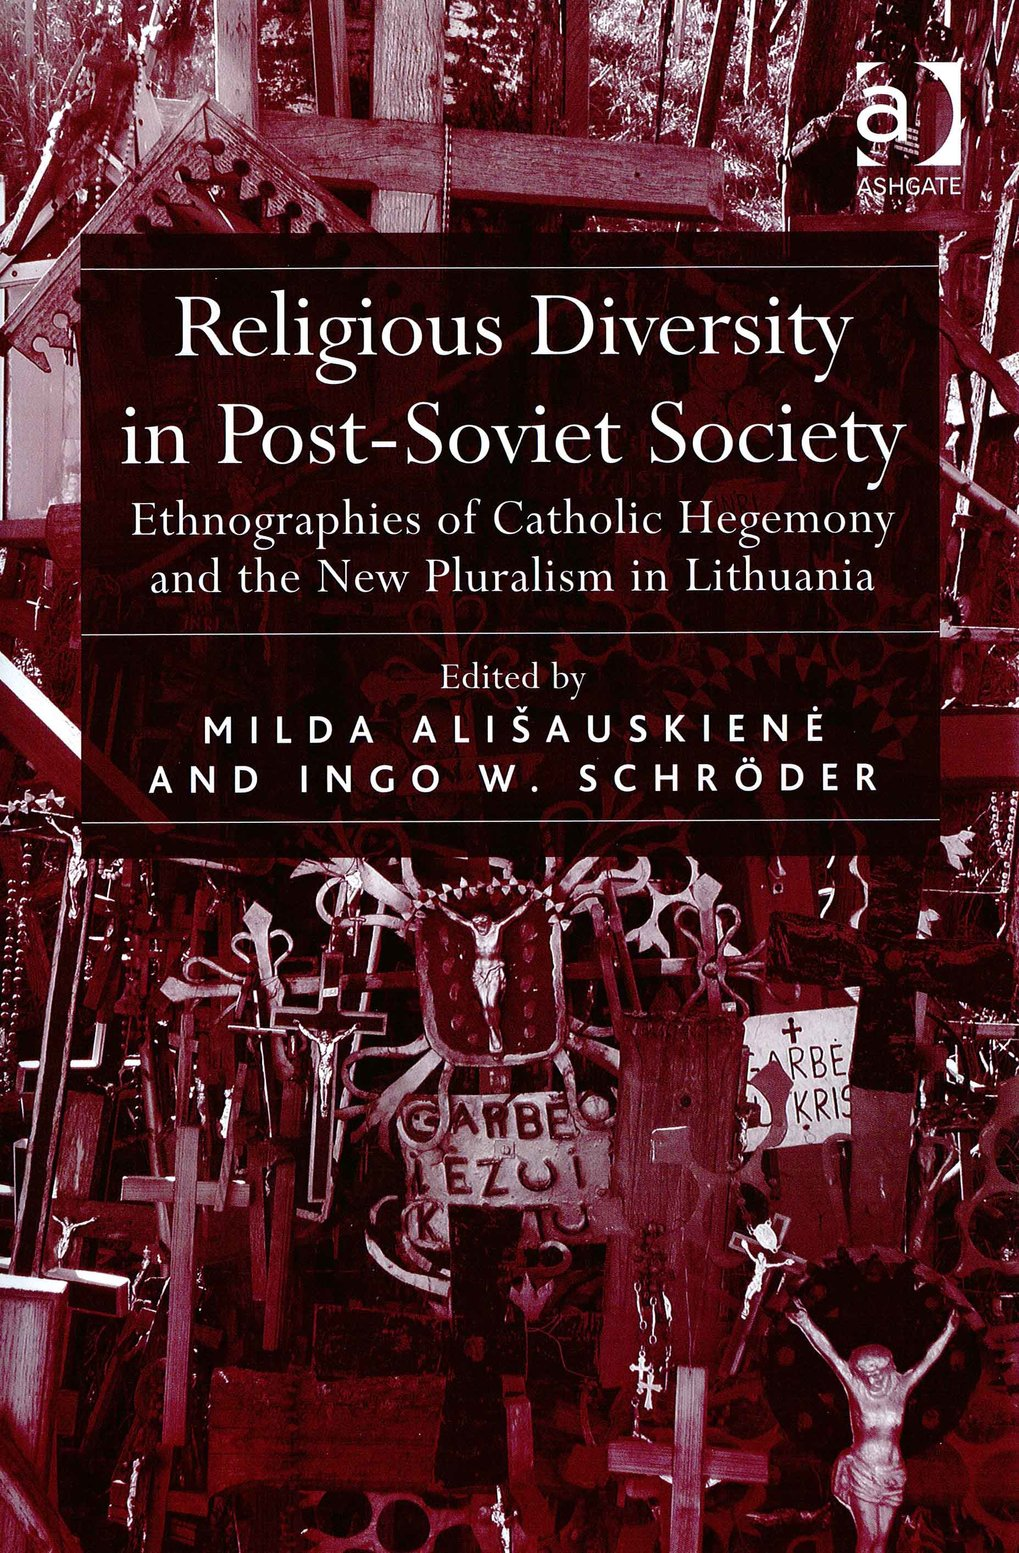 Religious Diversity in Post-Soviet Society. Ethnographies of Catholic hegemony and the new pluralism in Lithuania